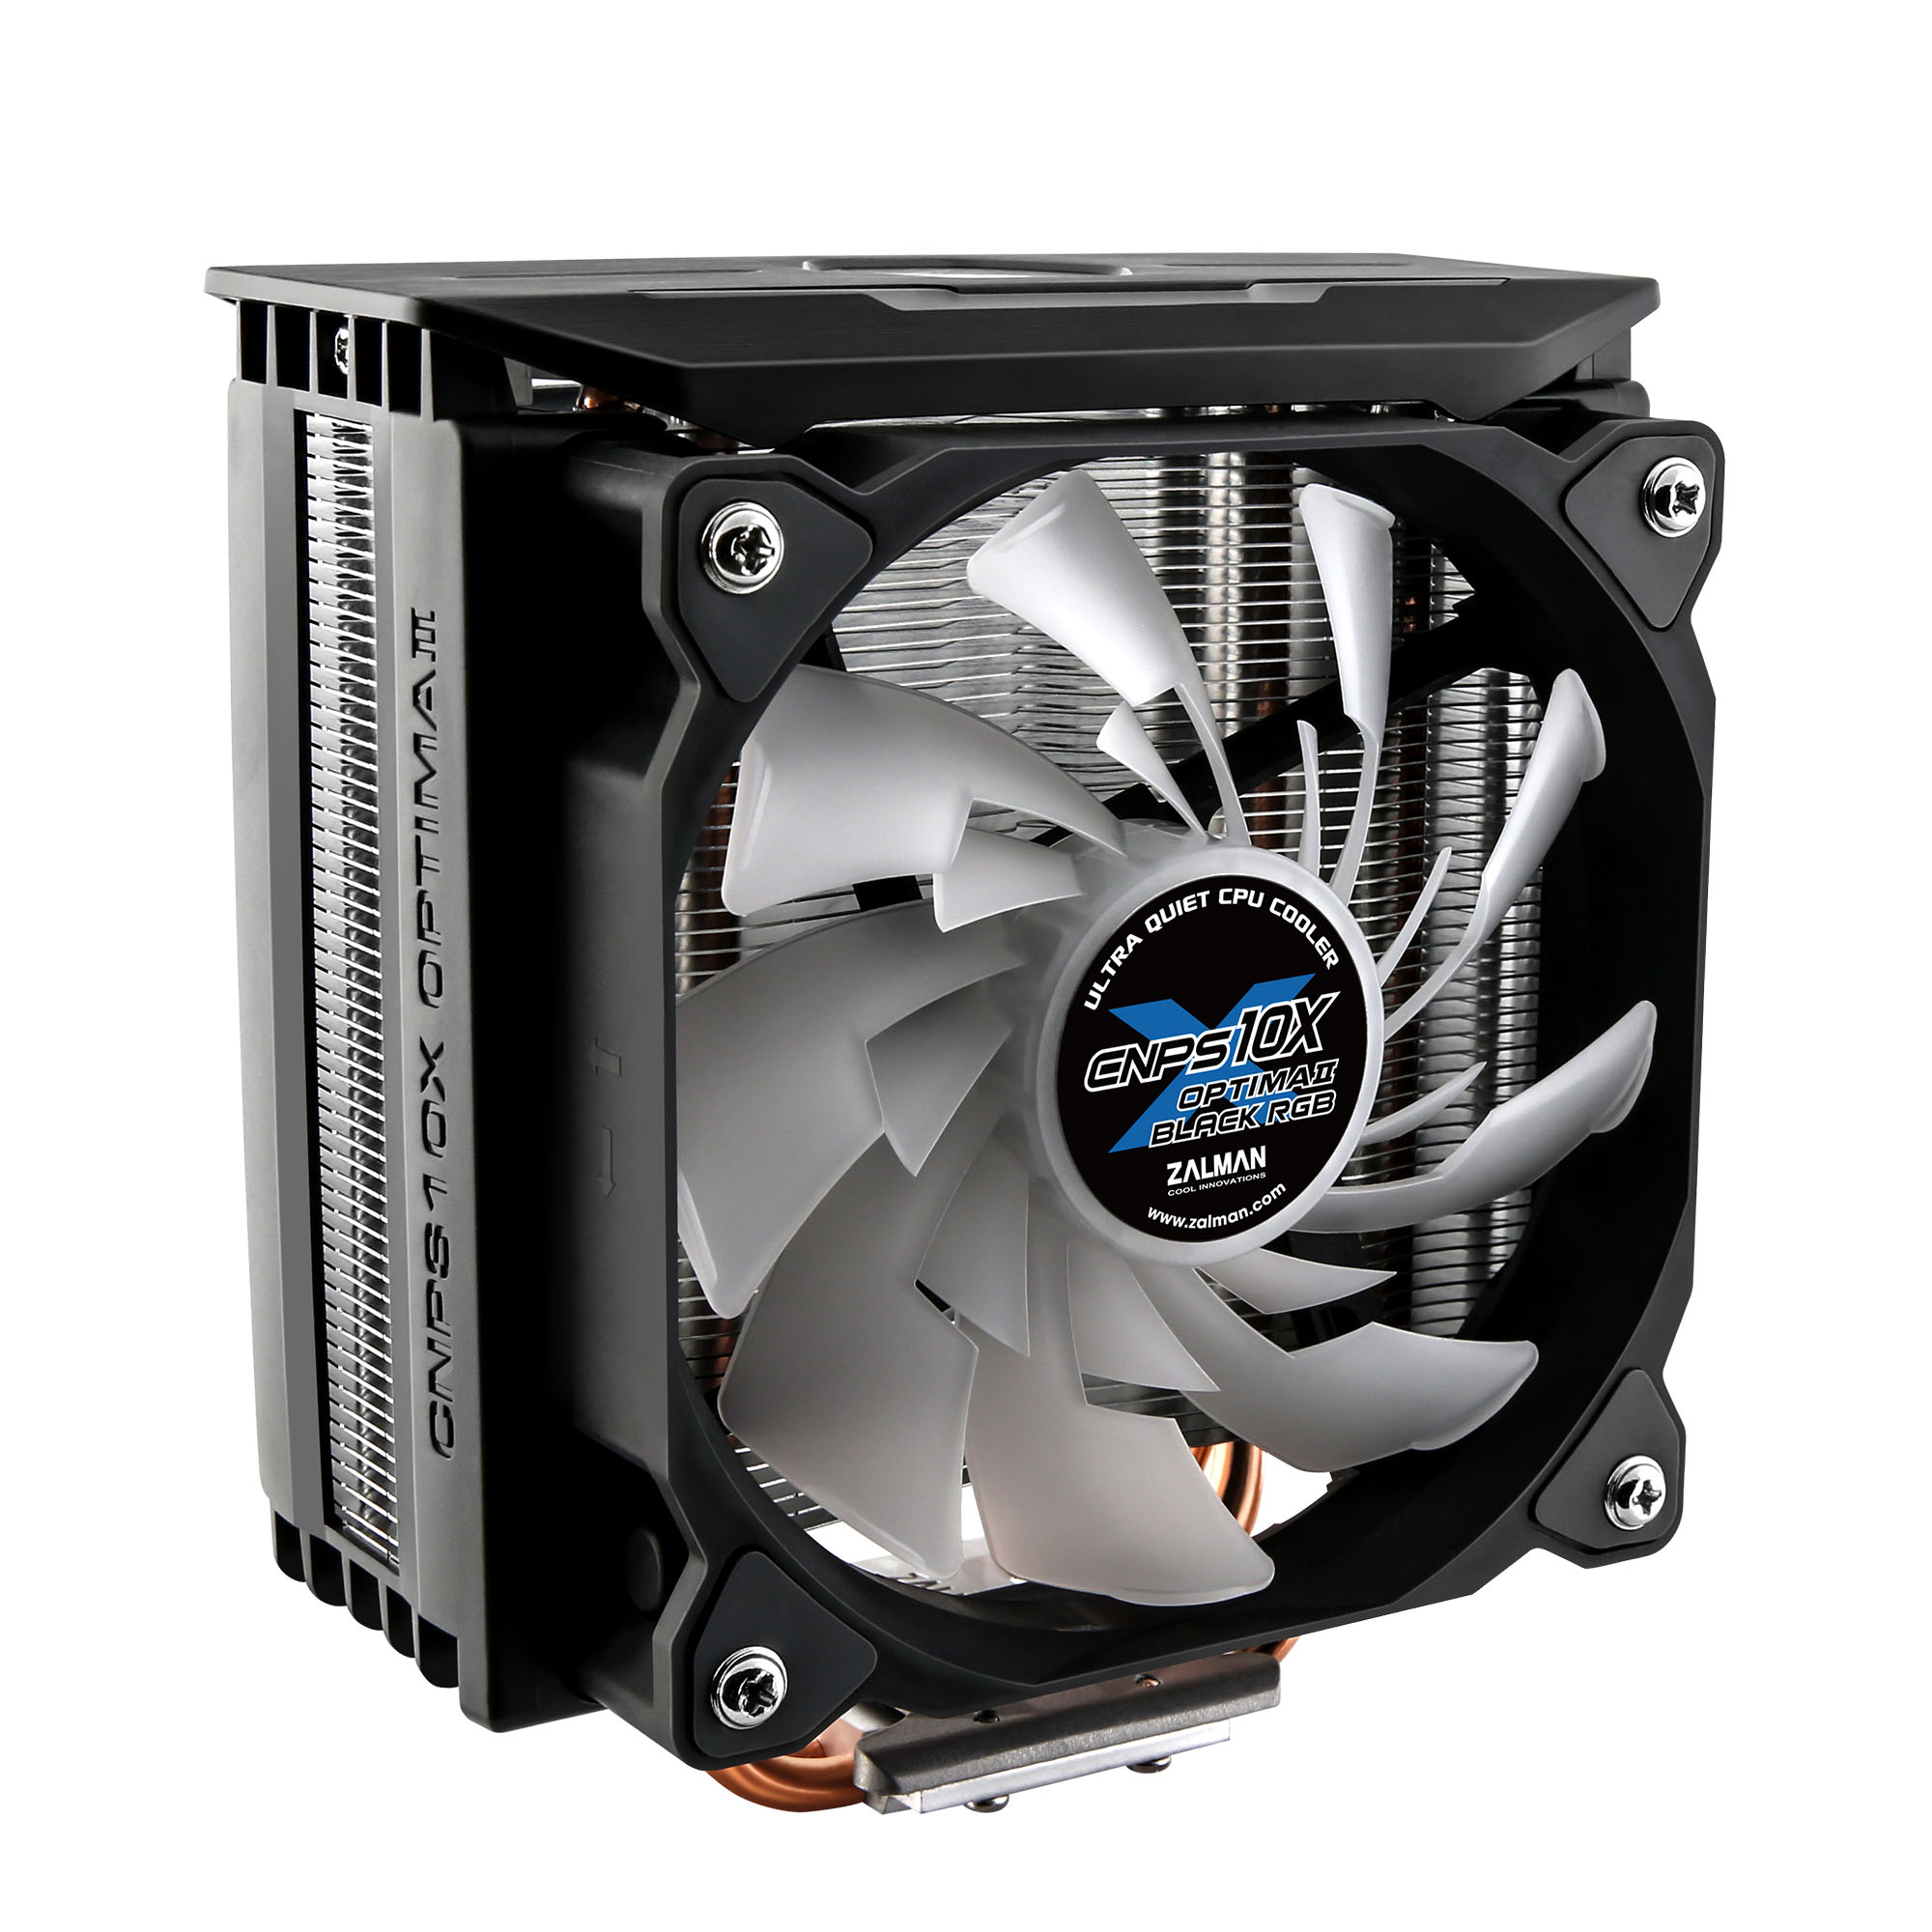 Zalman CNPS10X OPTIMAII BLACK RGB, CPU cooler, 120mm RGB PWM Fan / - RGB Spectrum 1,350 -2,100RPM, 18 -28.0dBA, Intel LGA 2066, 2011-V3 115x, 1200, 1366, AMD AM4, AM3+, AM3,, FM2+, FM2